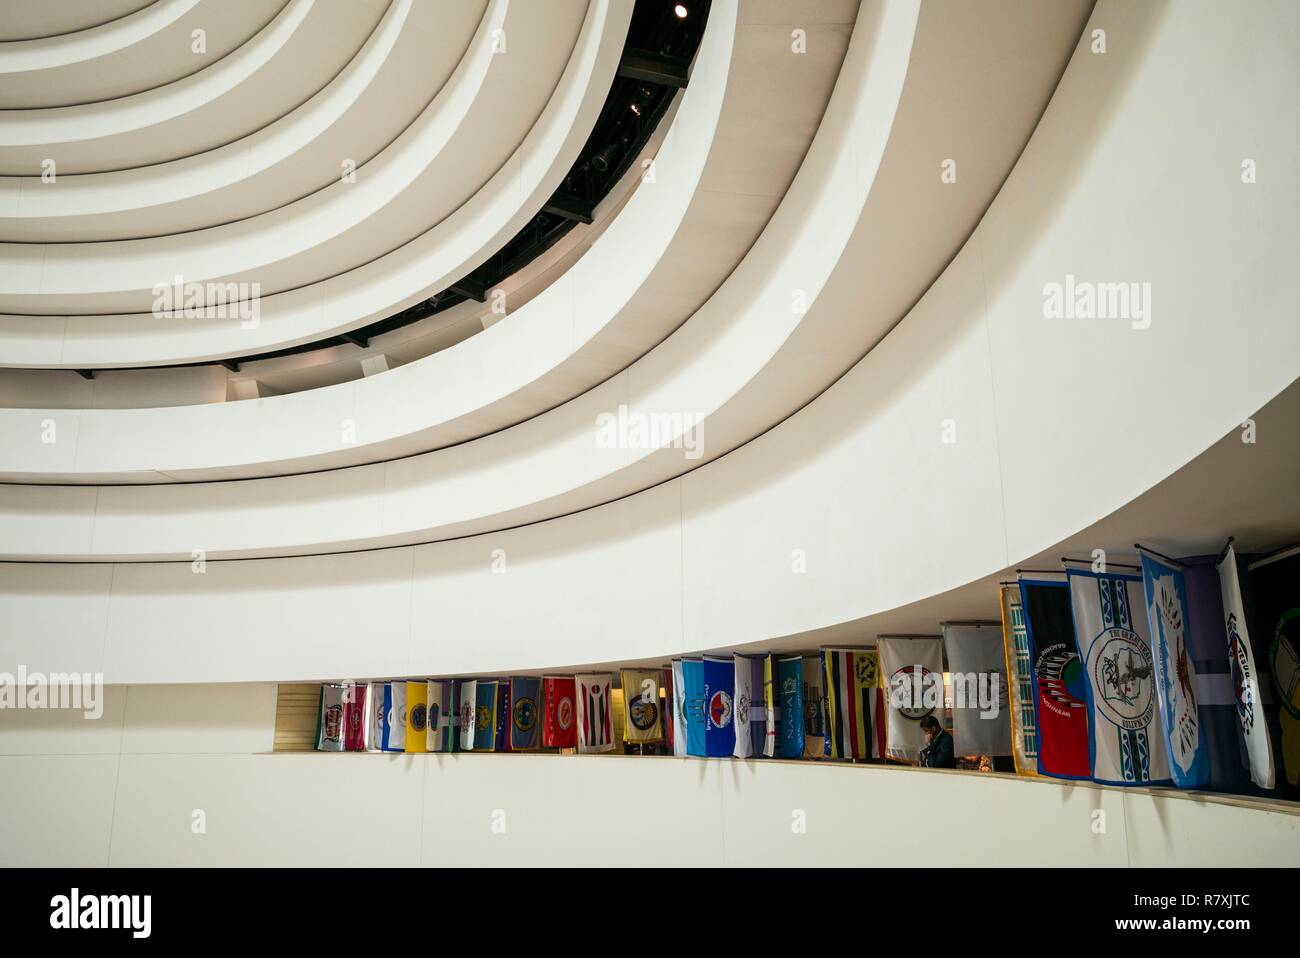 United States, District of Columbia, Washington, National Museum of the American Indian, ceiing - Stock Image